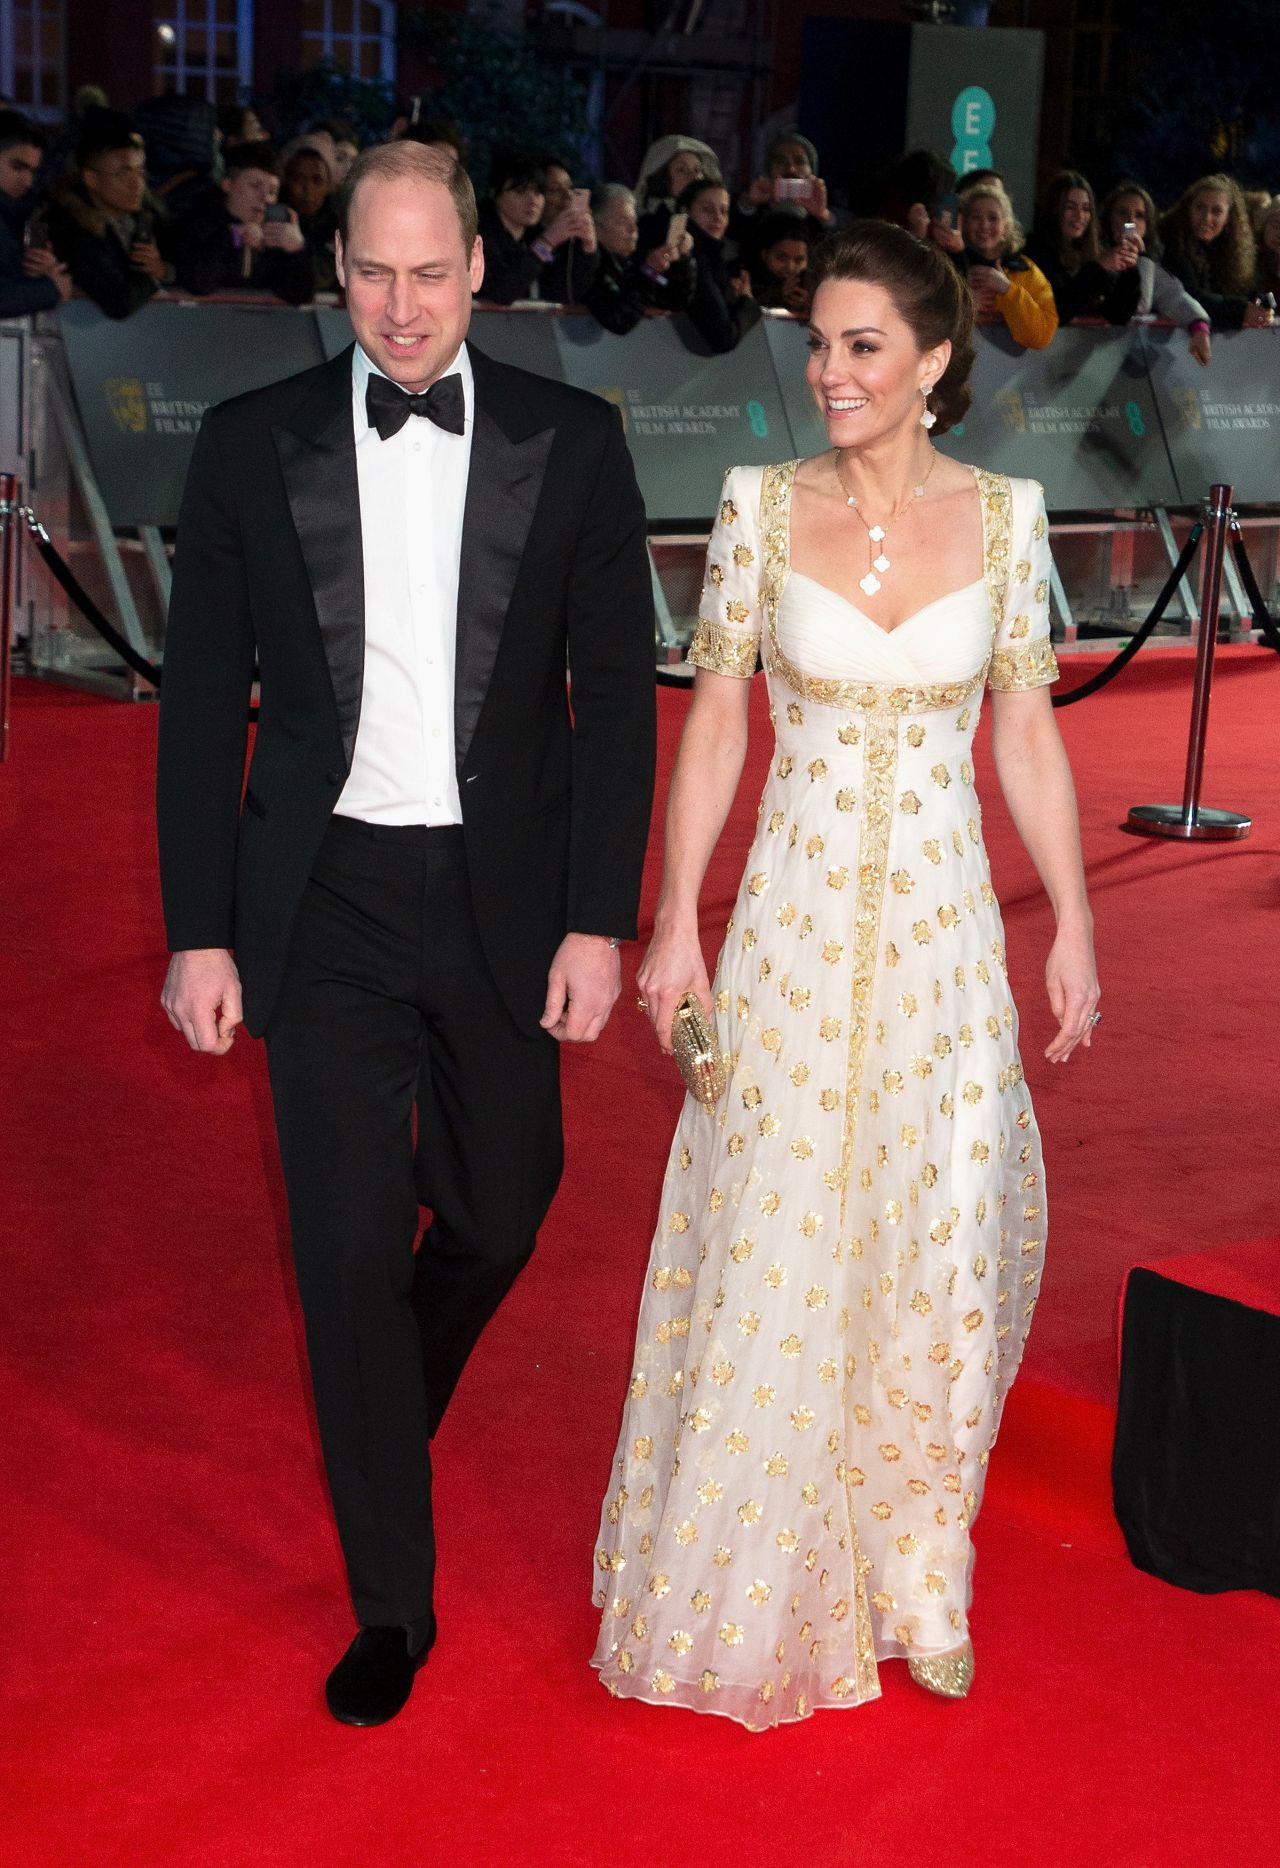 catherine-duchess-of-cambridge-in-alexander-mcqueen-2020-ee-british-academy-film-awards